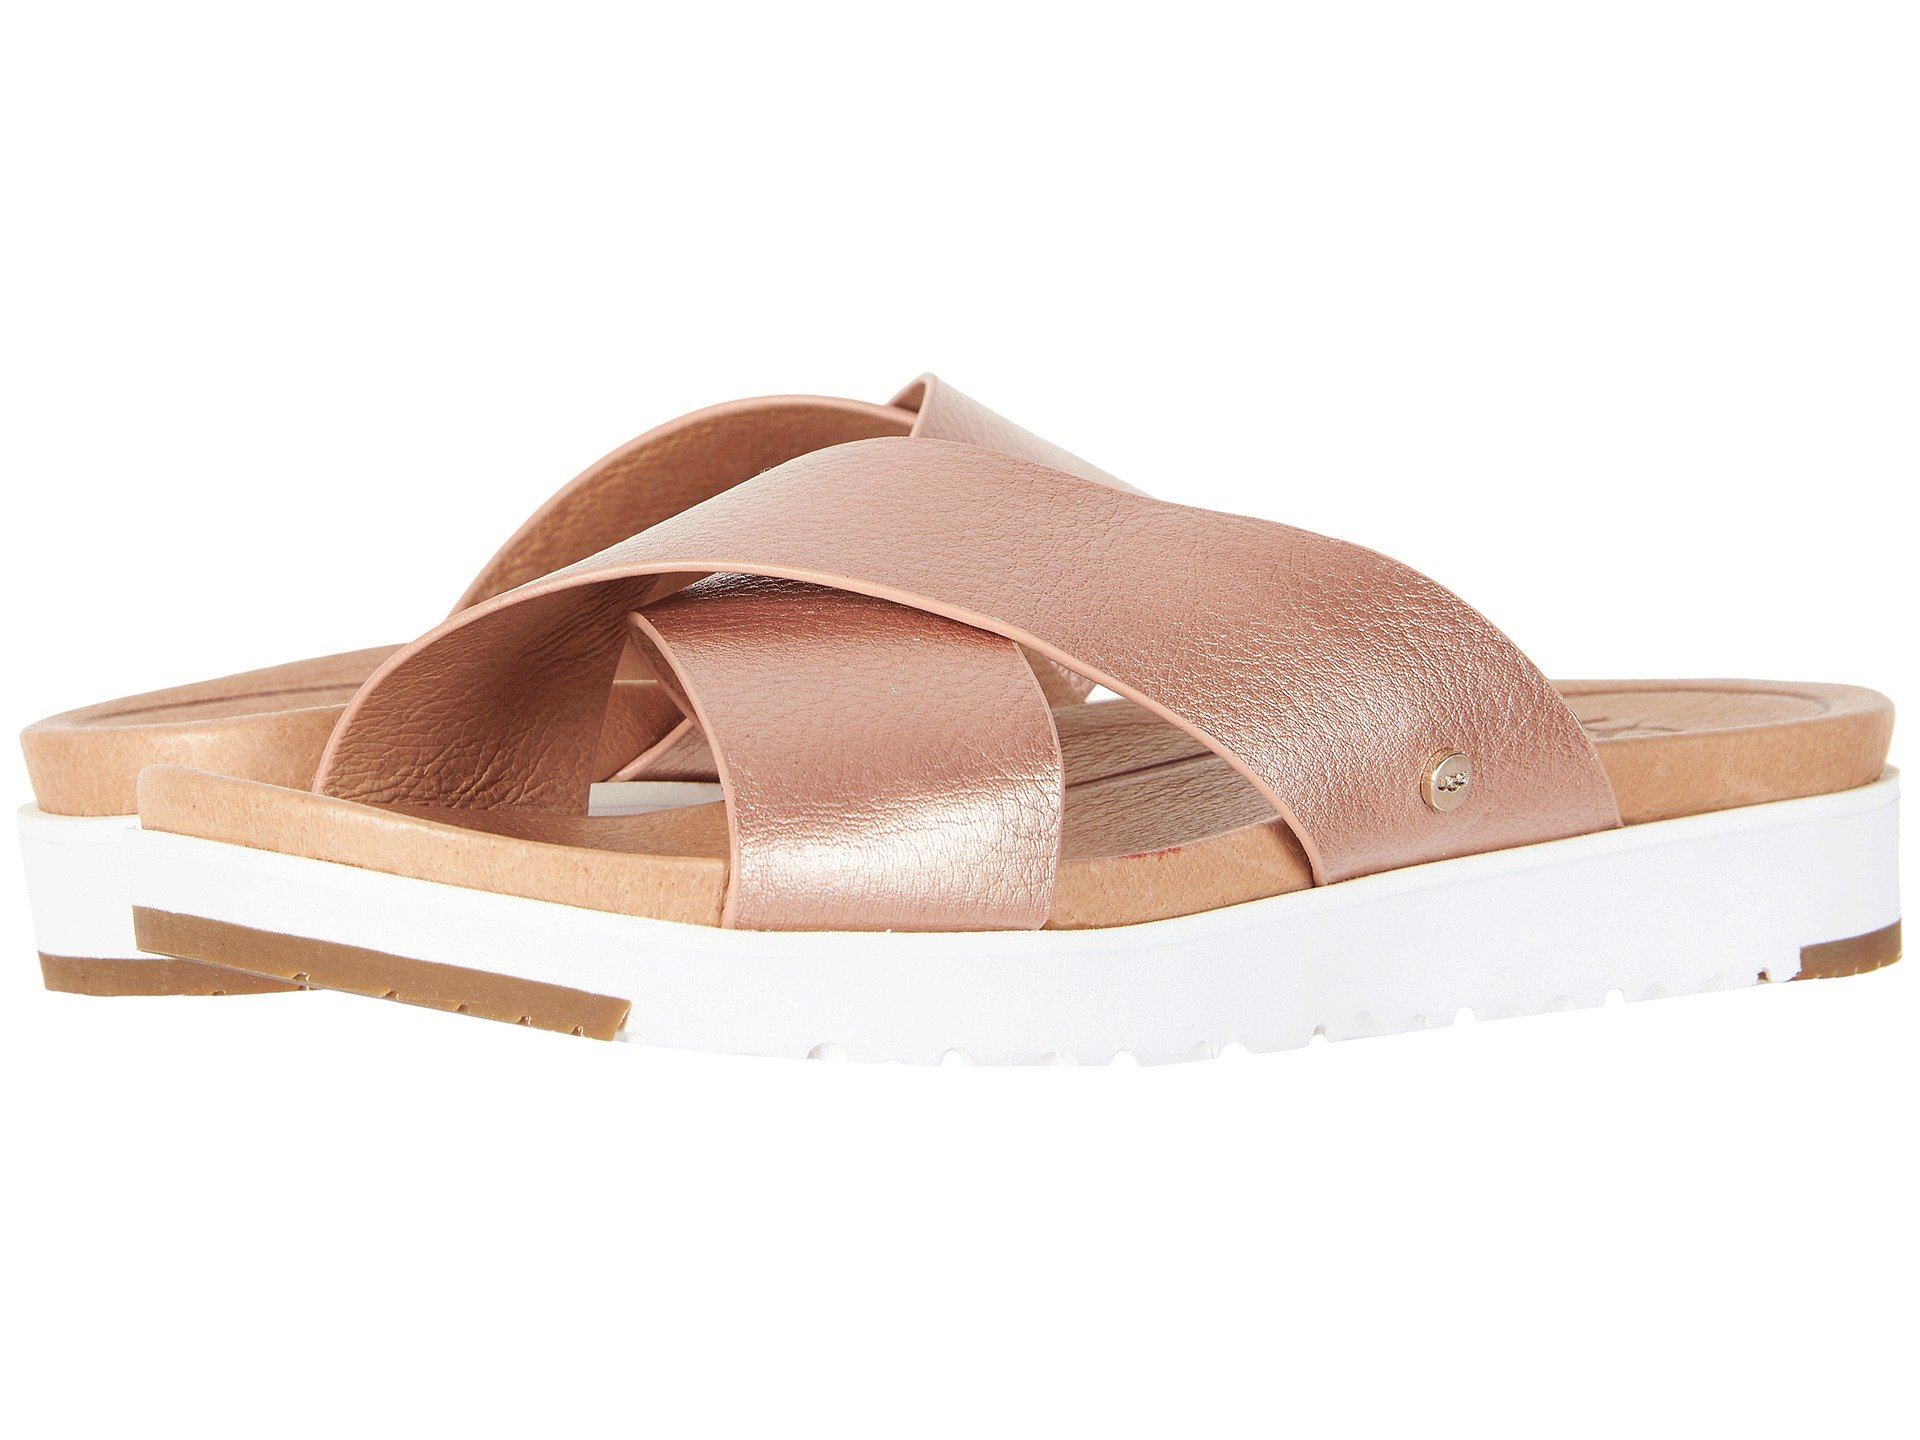 69ccf8c91a2 Women's UGG Sandals + FREE SHIPPING | Shoes | Zappos.com